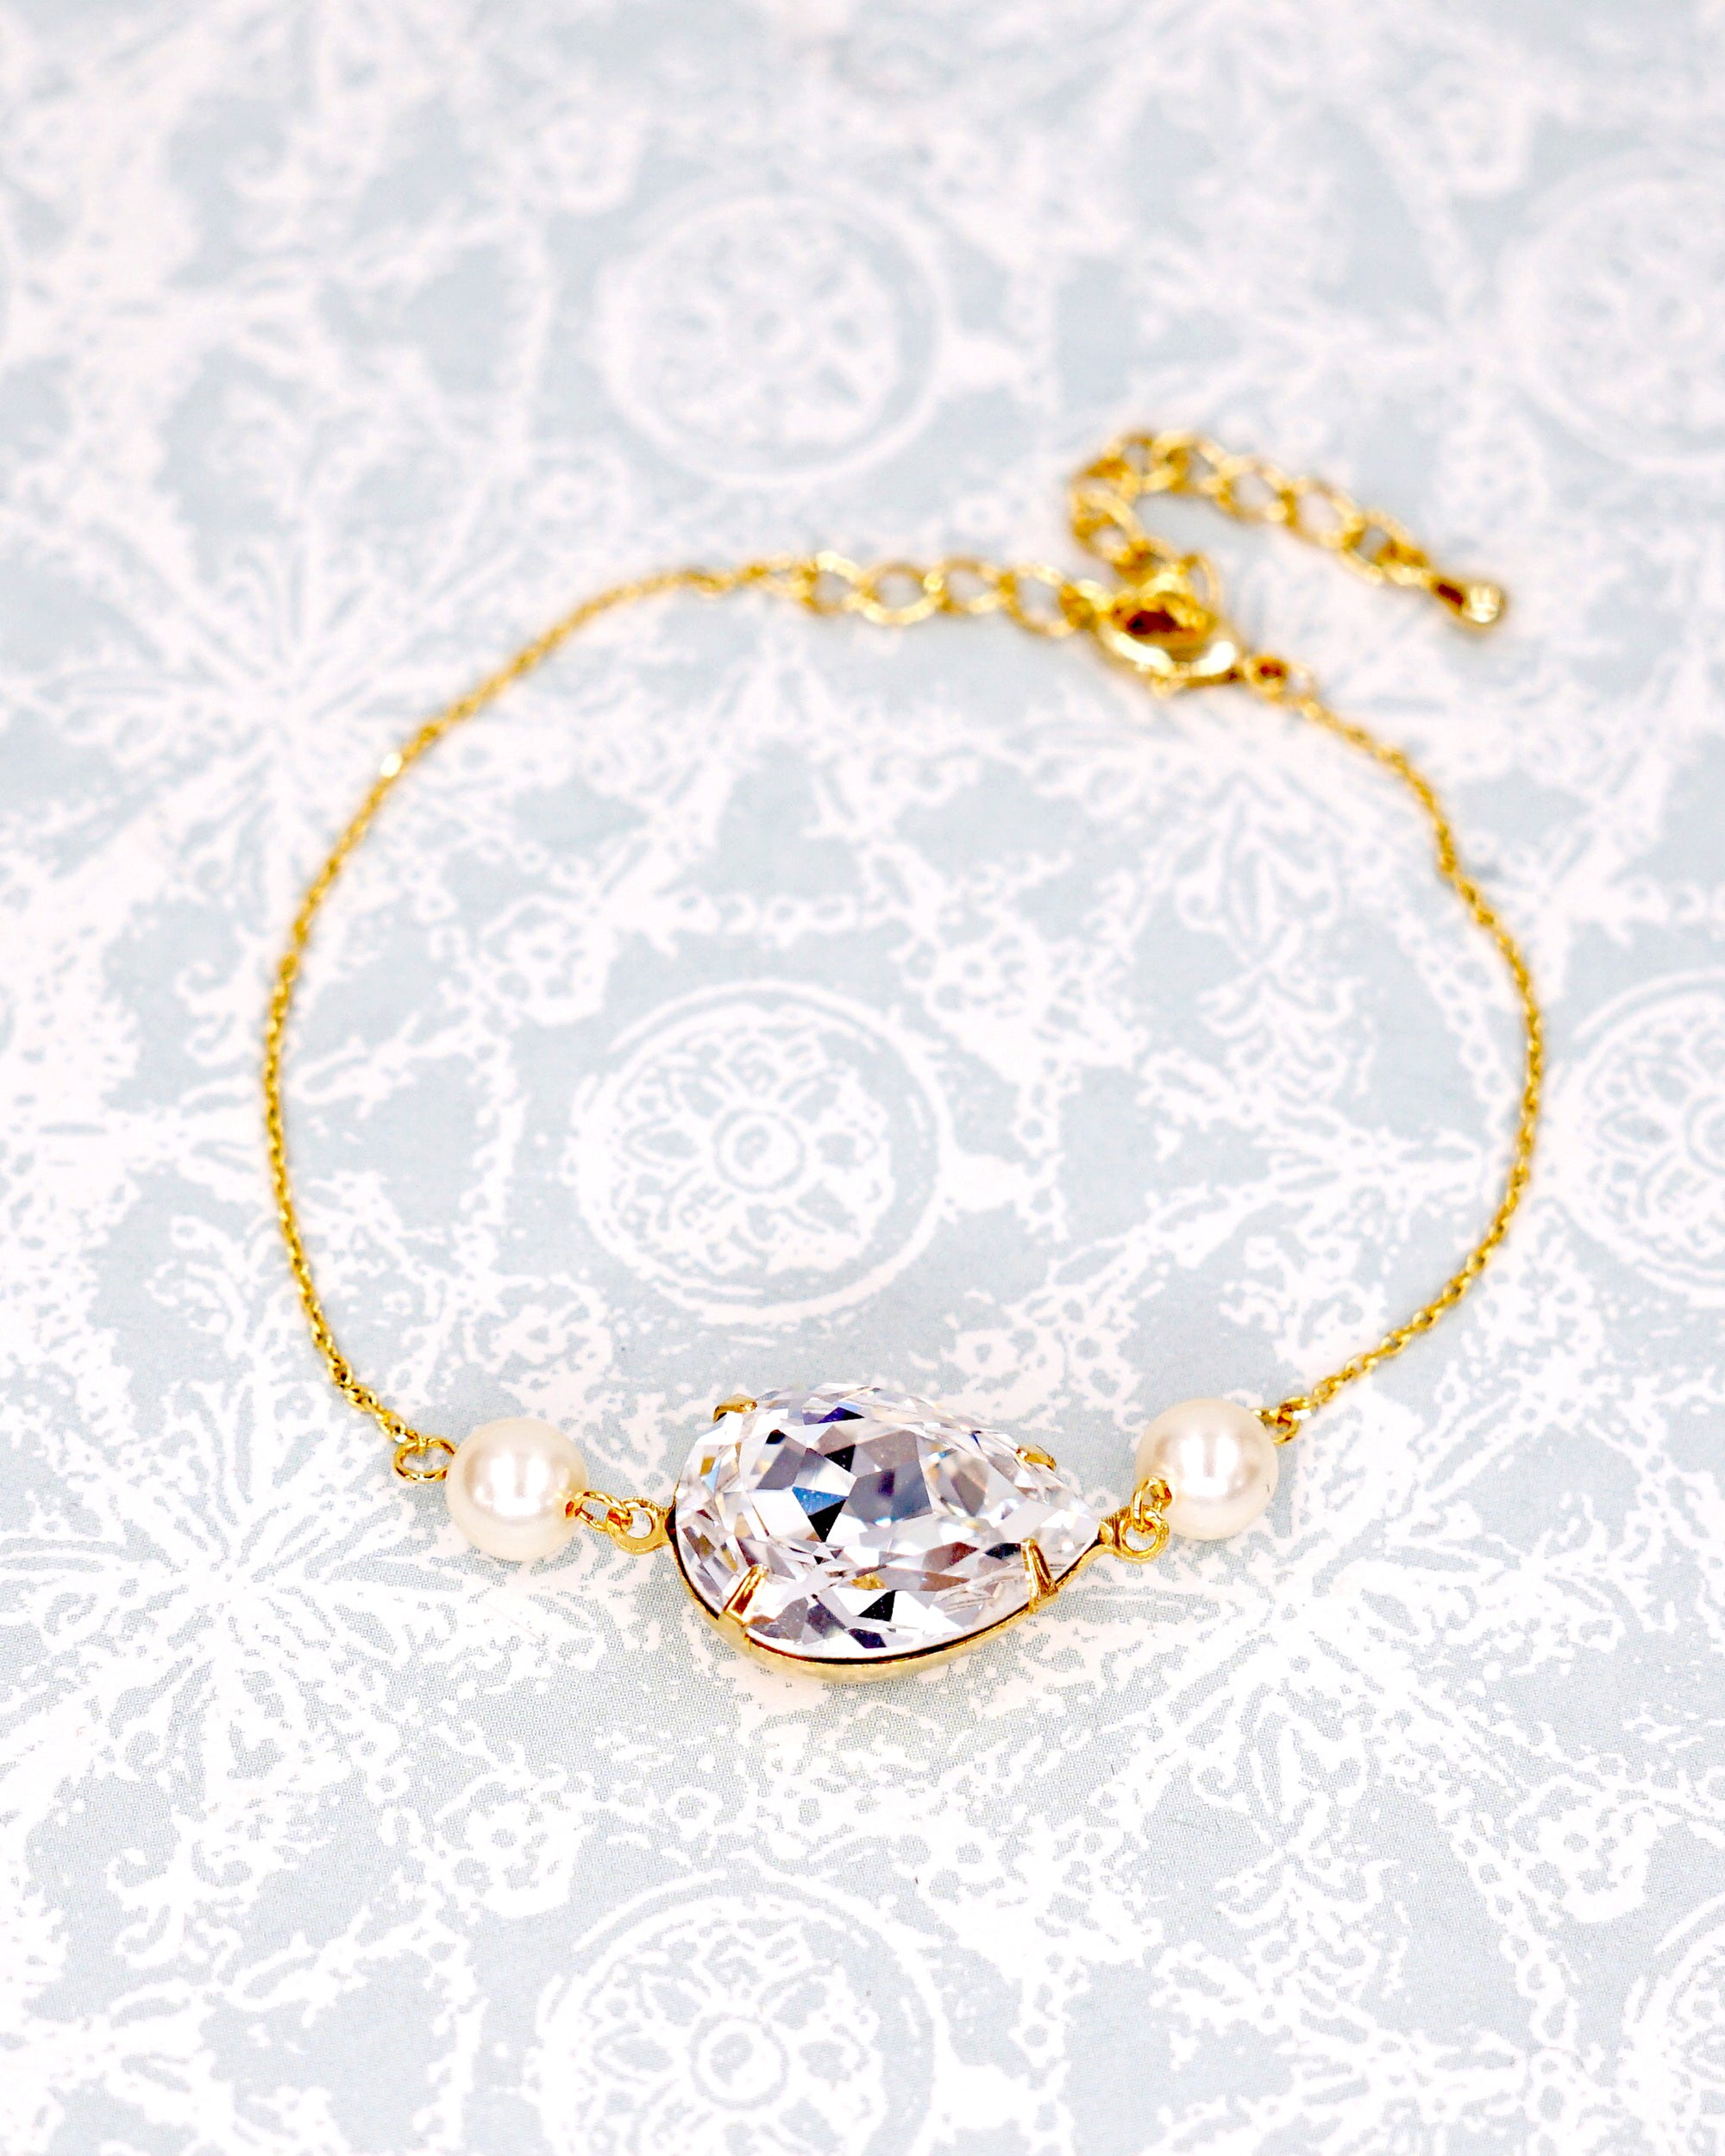 Swarovski Crystal Teardrop Gold Earrings, Necklace and Bracelet | Bridal Bridesmaid Jewelry